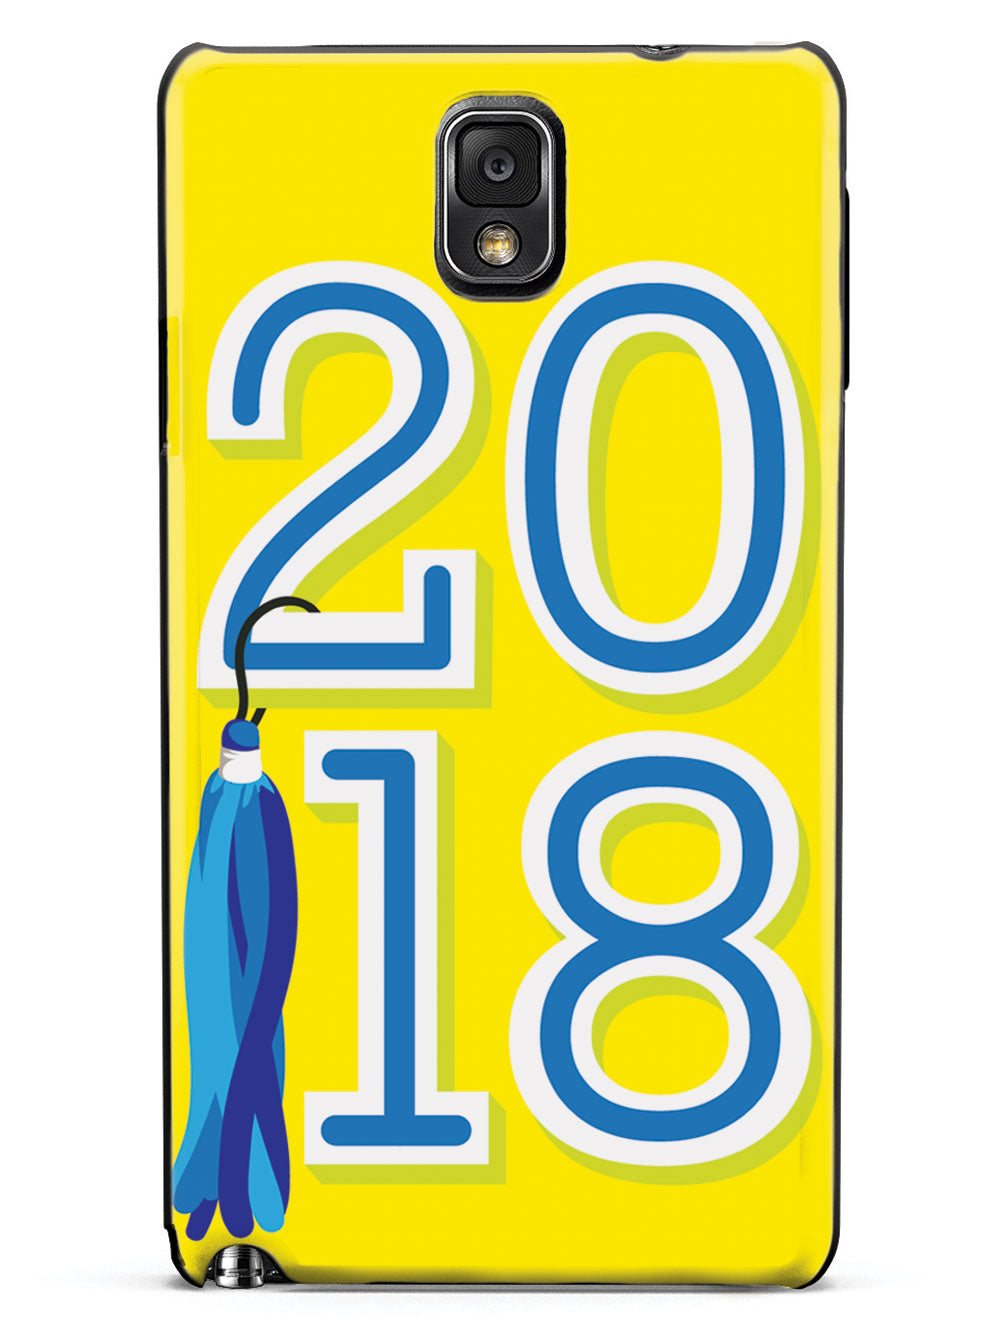 Class of 2018 - Yellow - Black Case